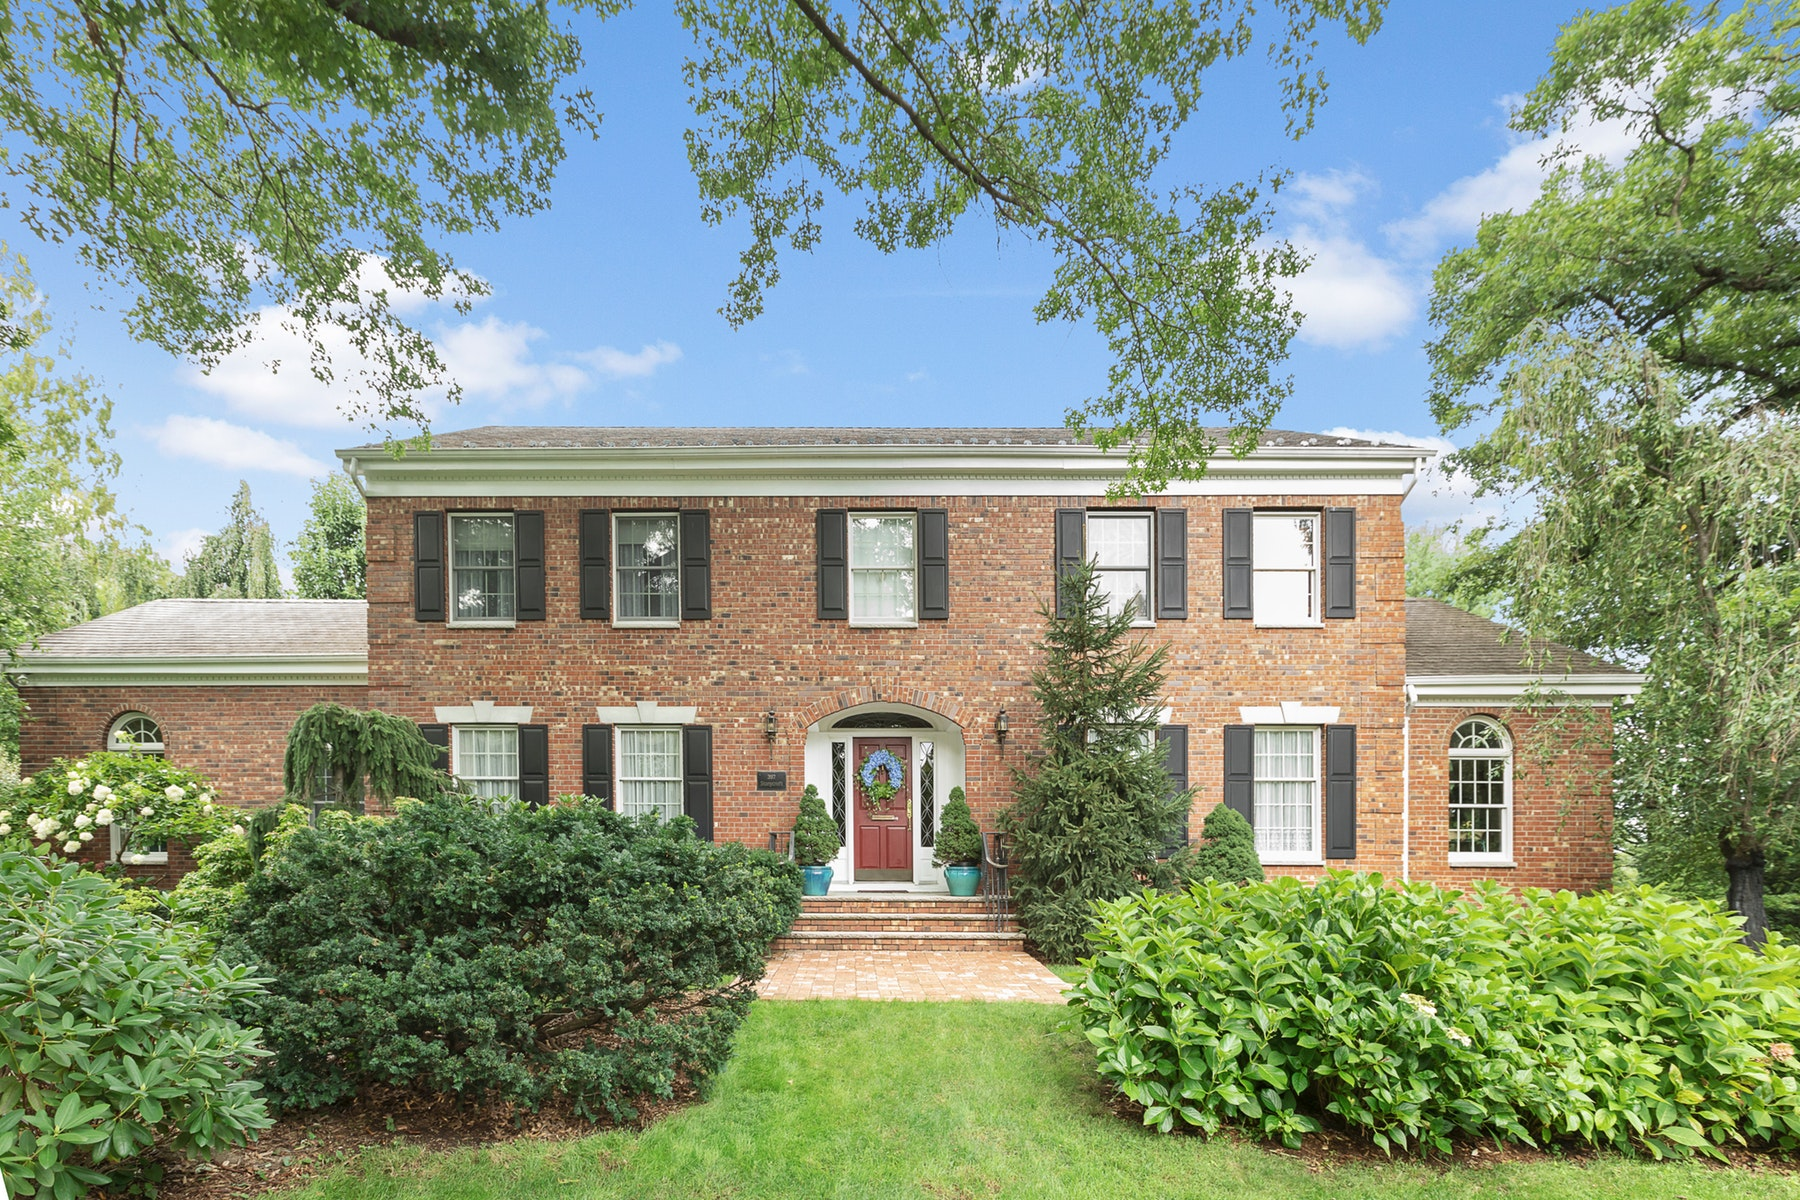 Single Family Homes for Sale at Charming Colonial 397 Stonycroft Road Ridgewood, New Jersey 07450 United States